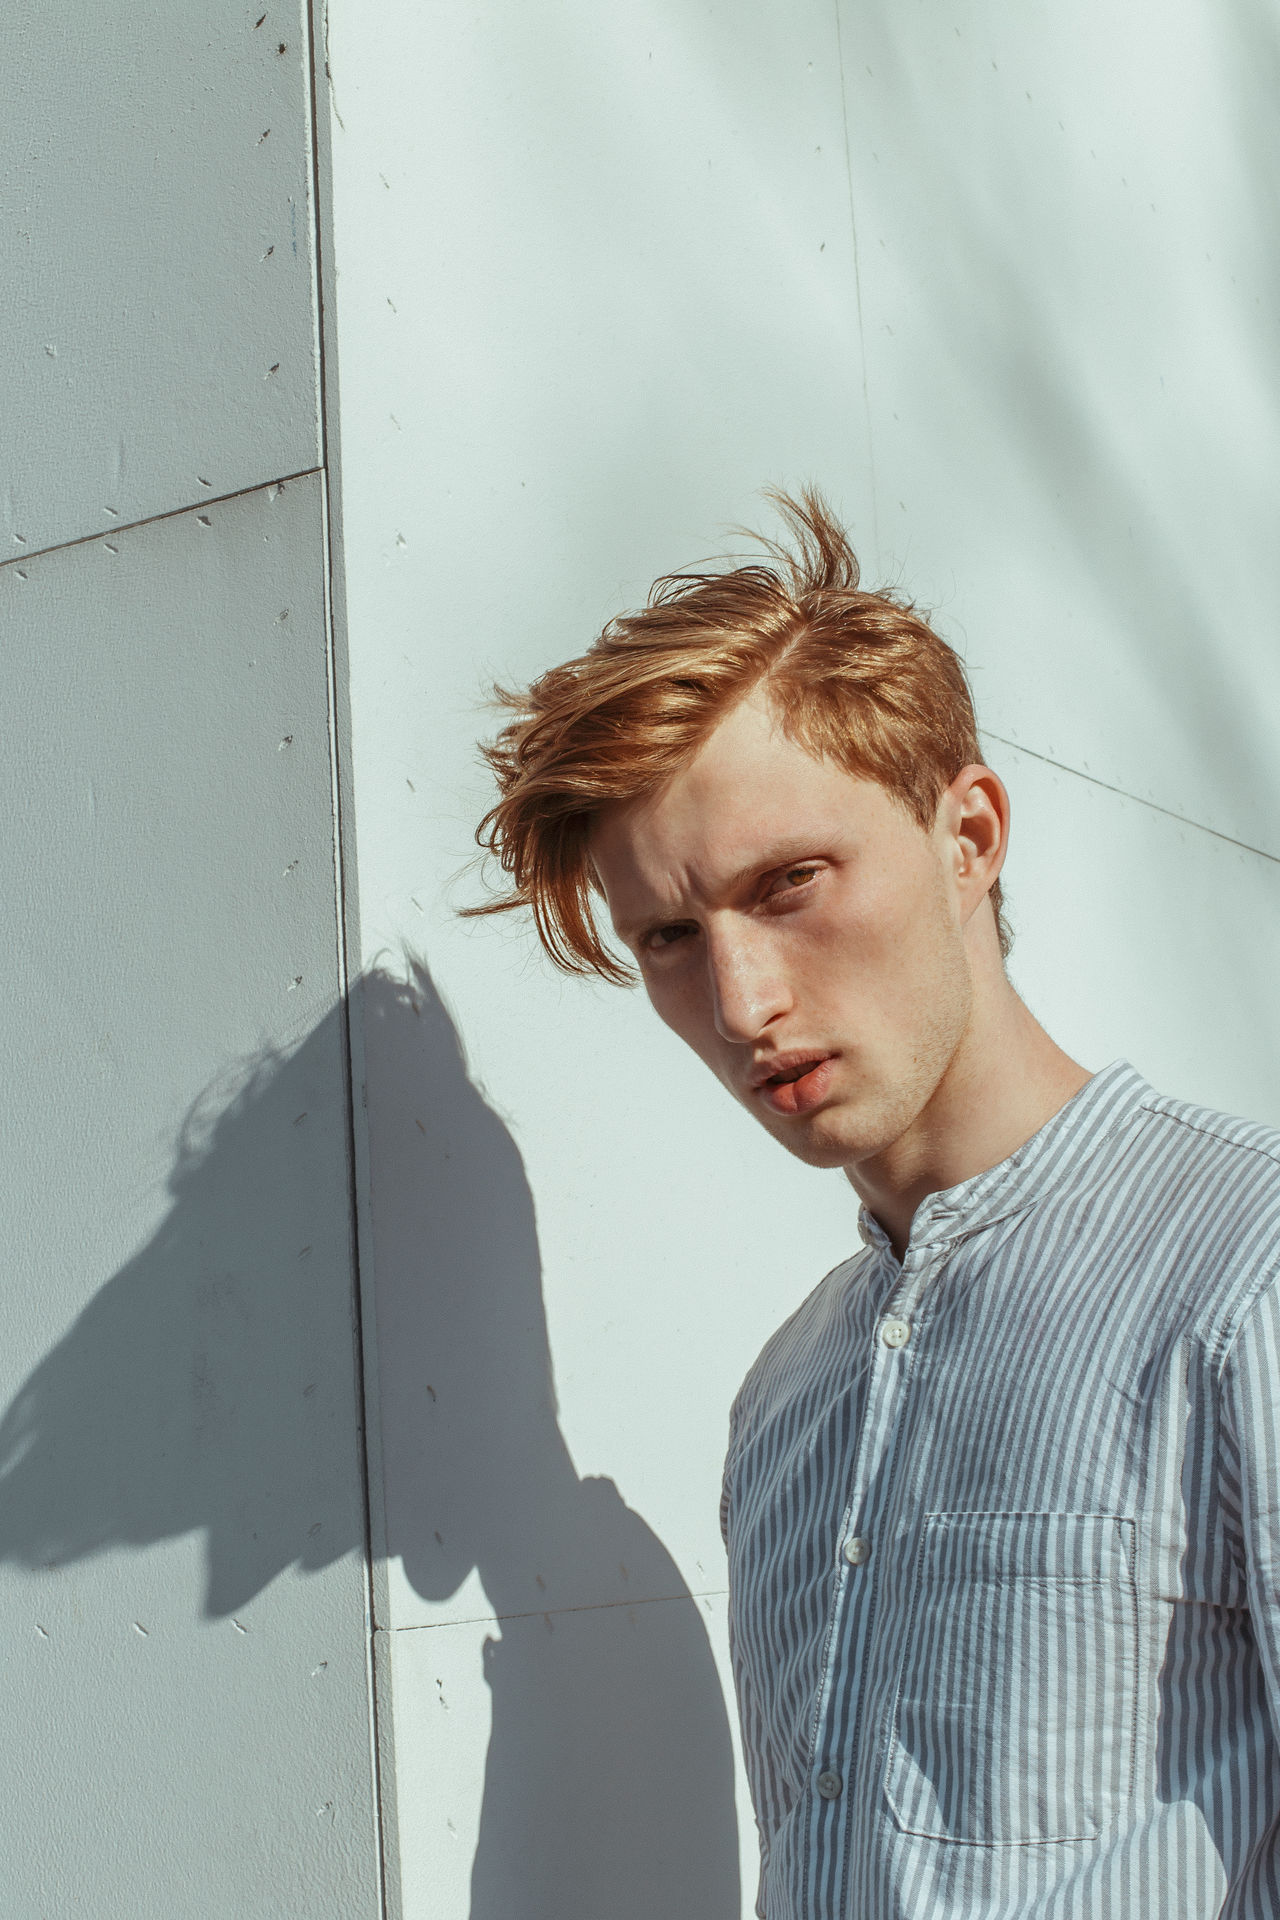 PORTRAIT OF YOUNG MAN LOOKING AWAY WHILE STANDING ON WALL